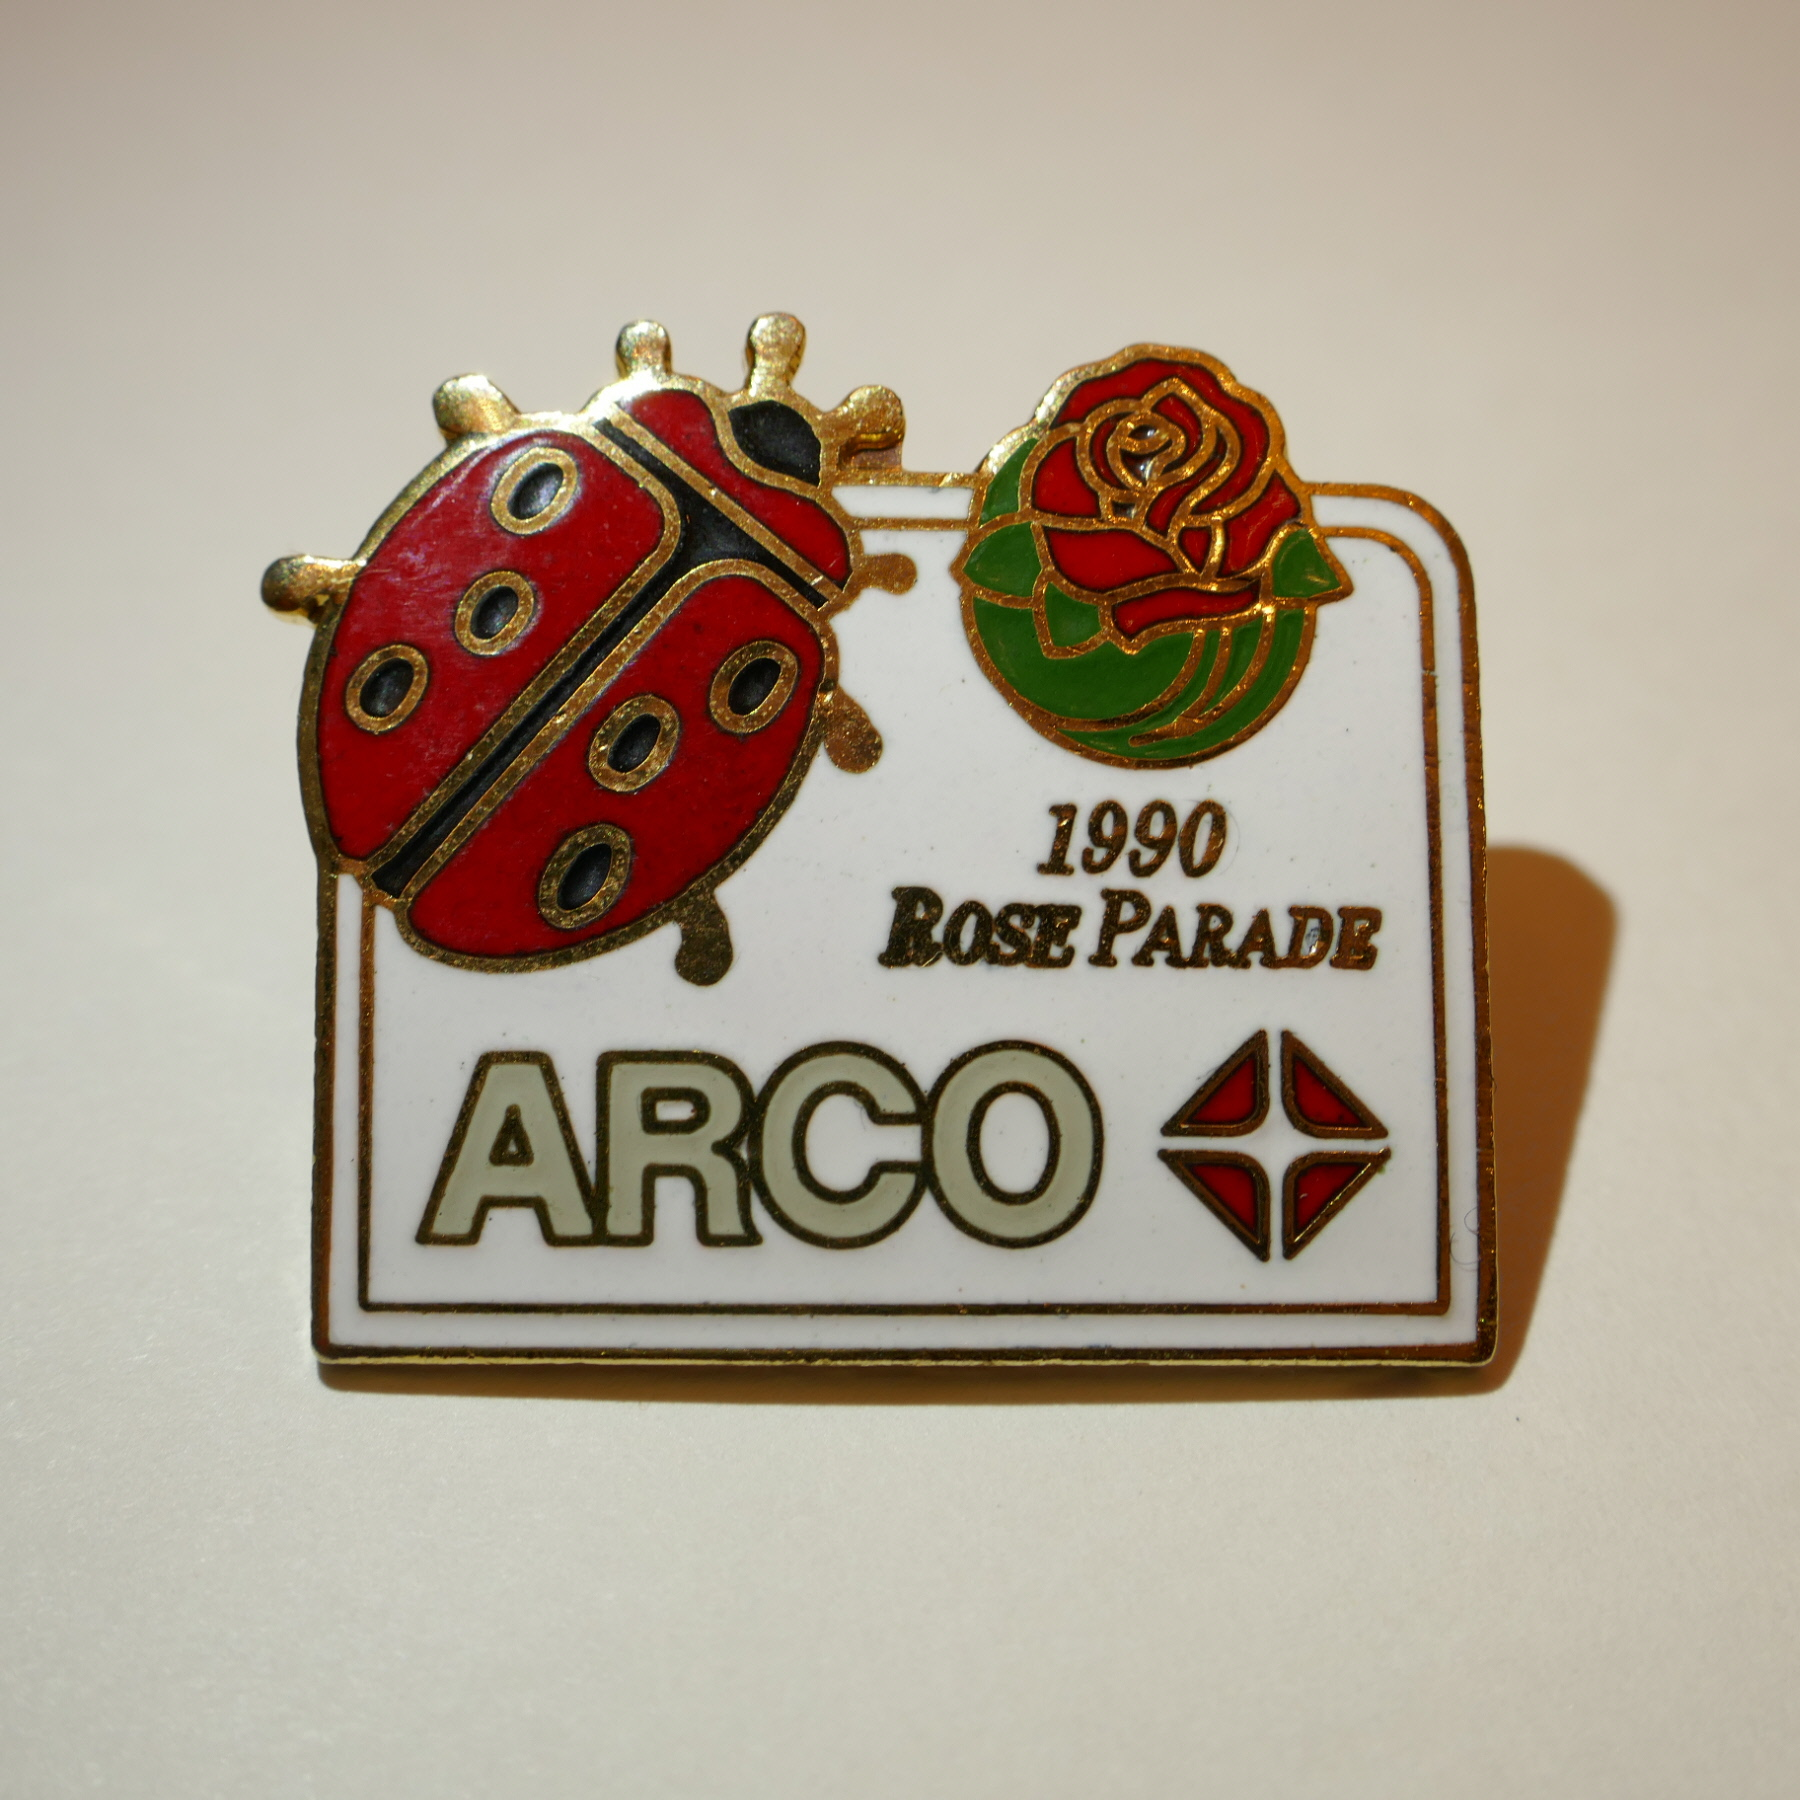 ARCO 1990 ROSE PARADE pins